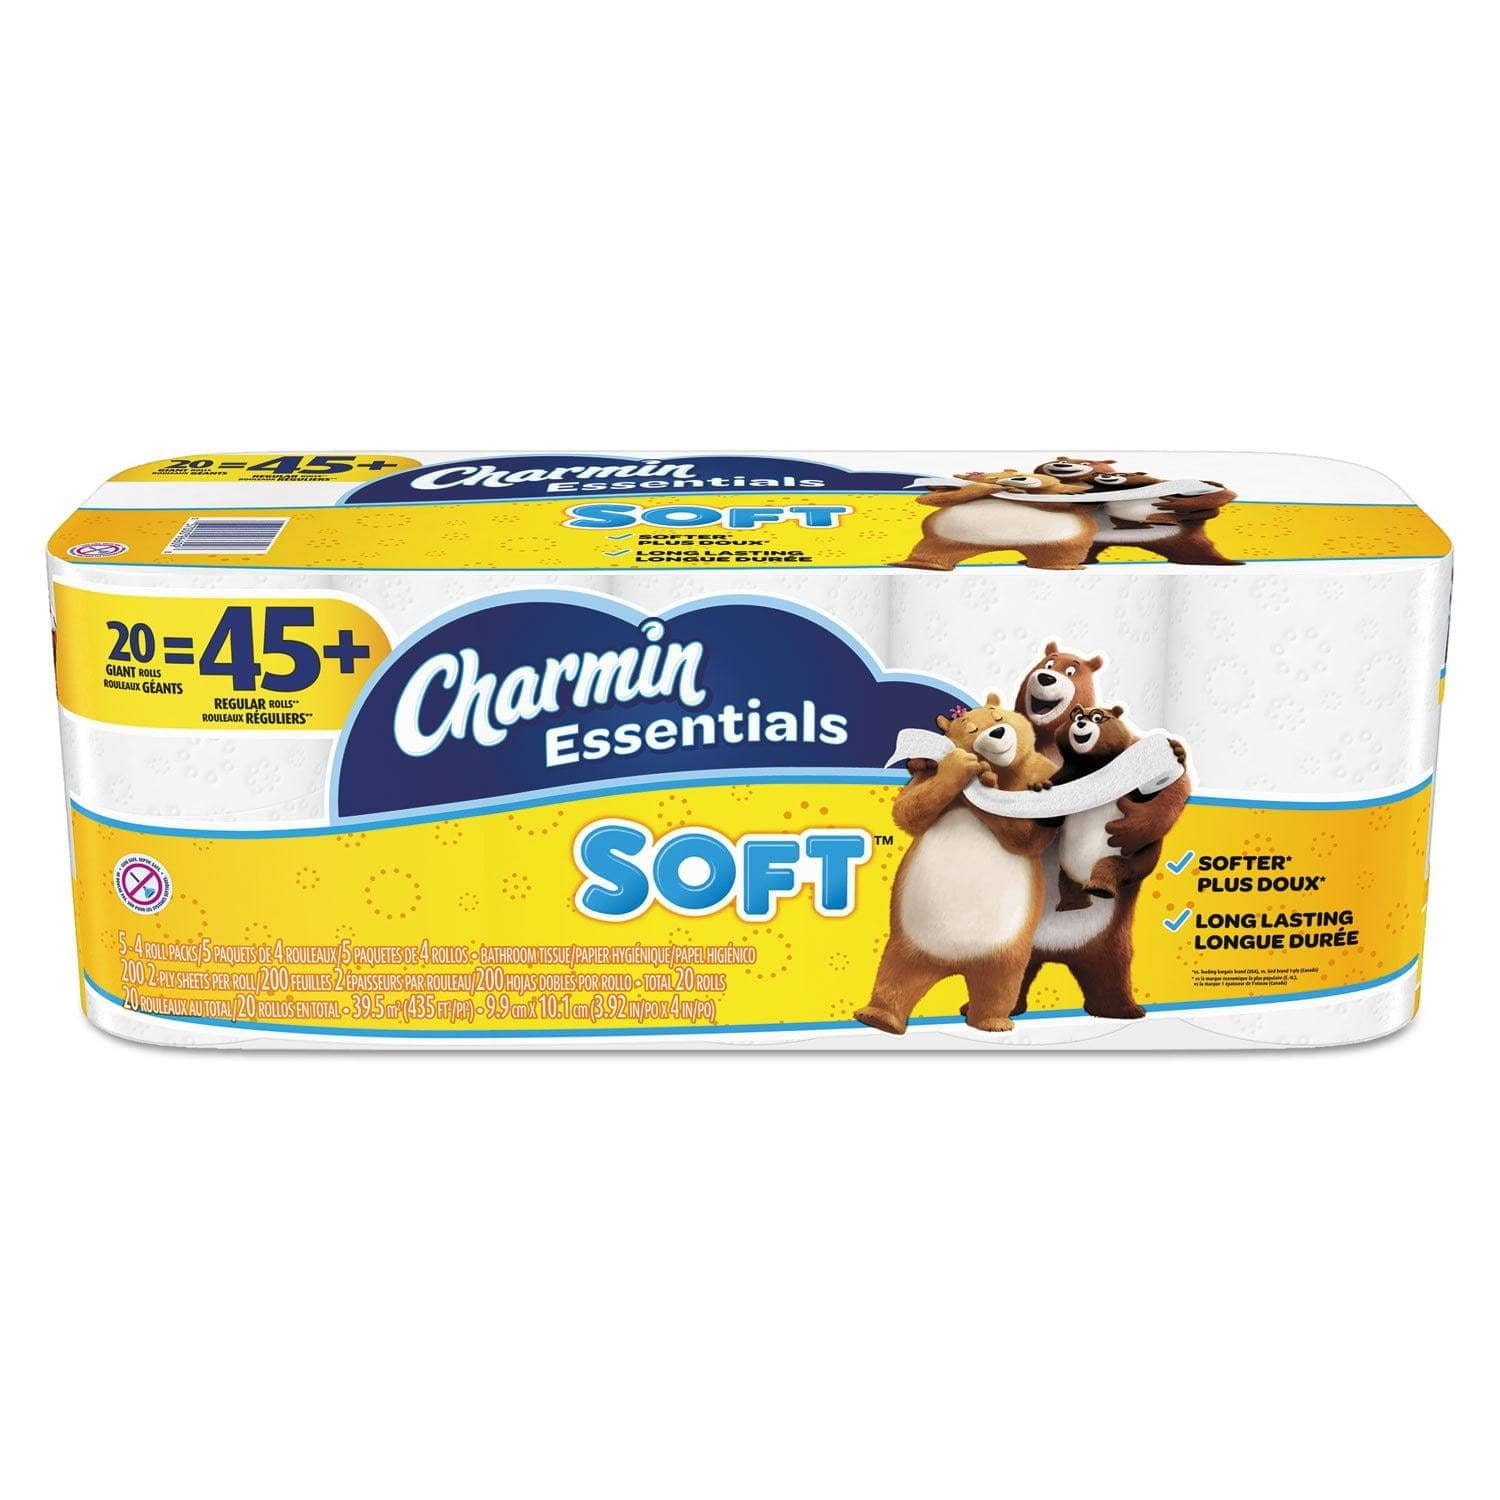 Charmin Essentials Soft Bathroom Tissue, Septic Safe, 2-Ply, White, 4 X 3.92, 200/Roll, 20 Roll/Pack - PGC96609 - TotalRestroom.com